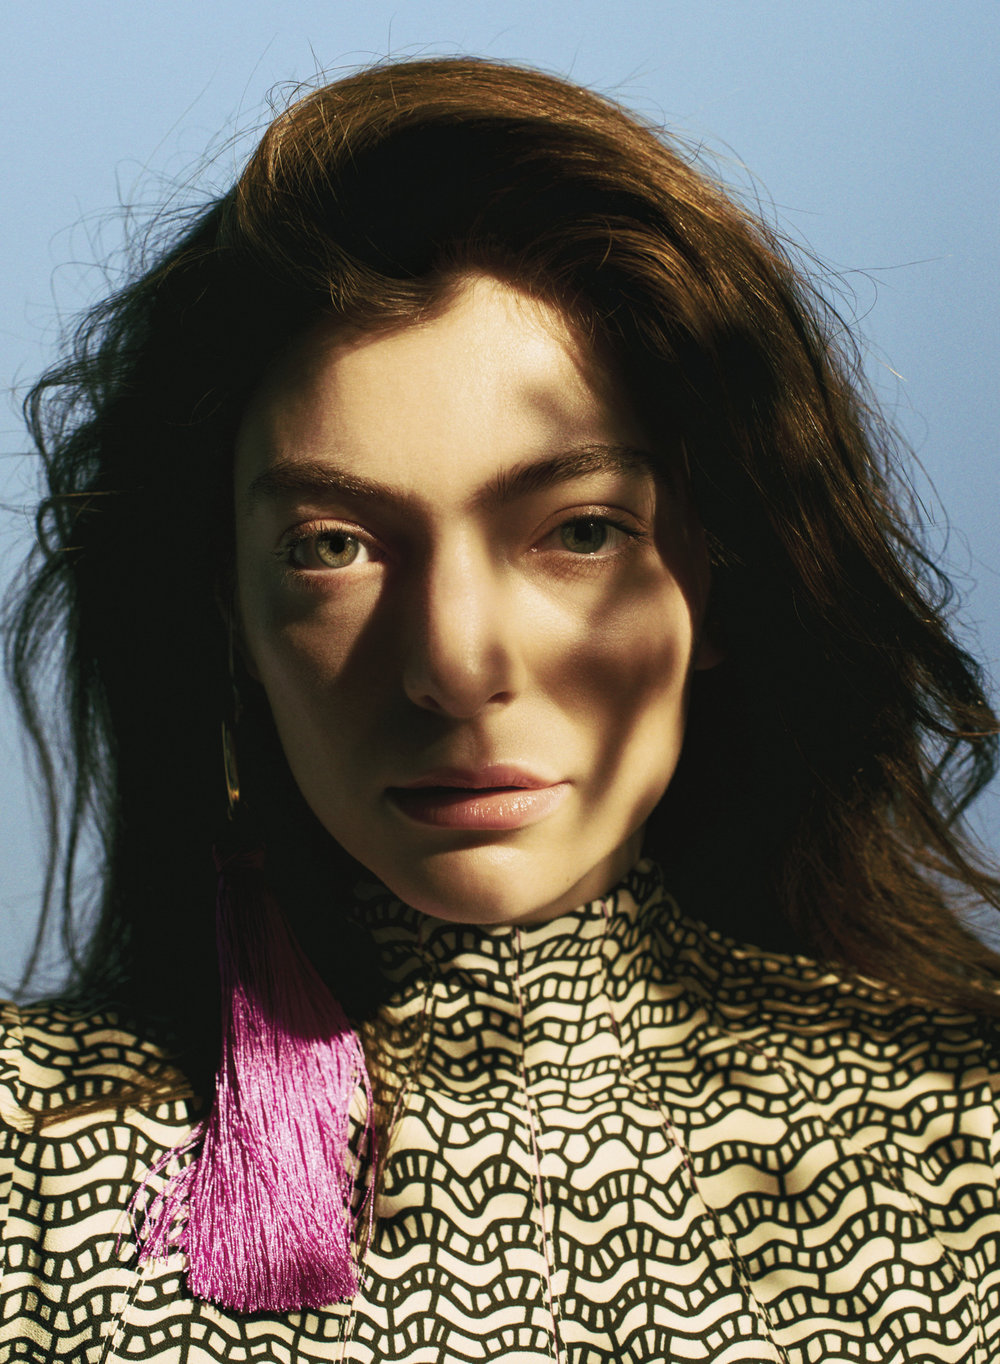 Lorde by ARKAN ZAKHAROV